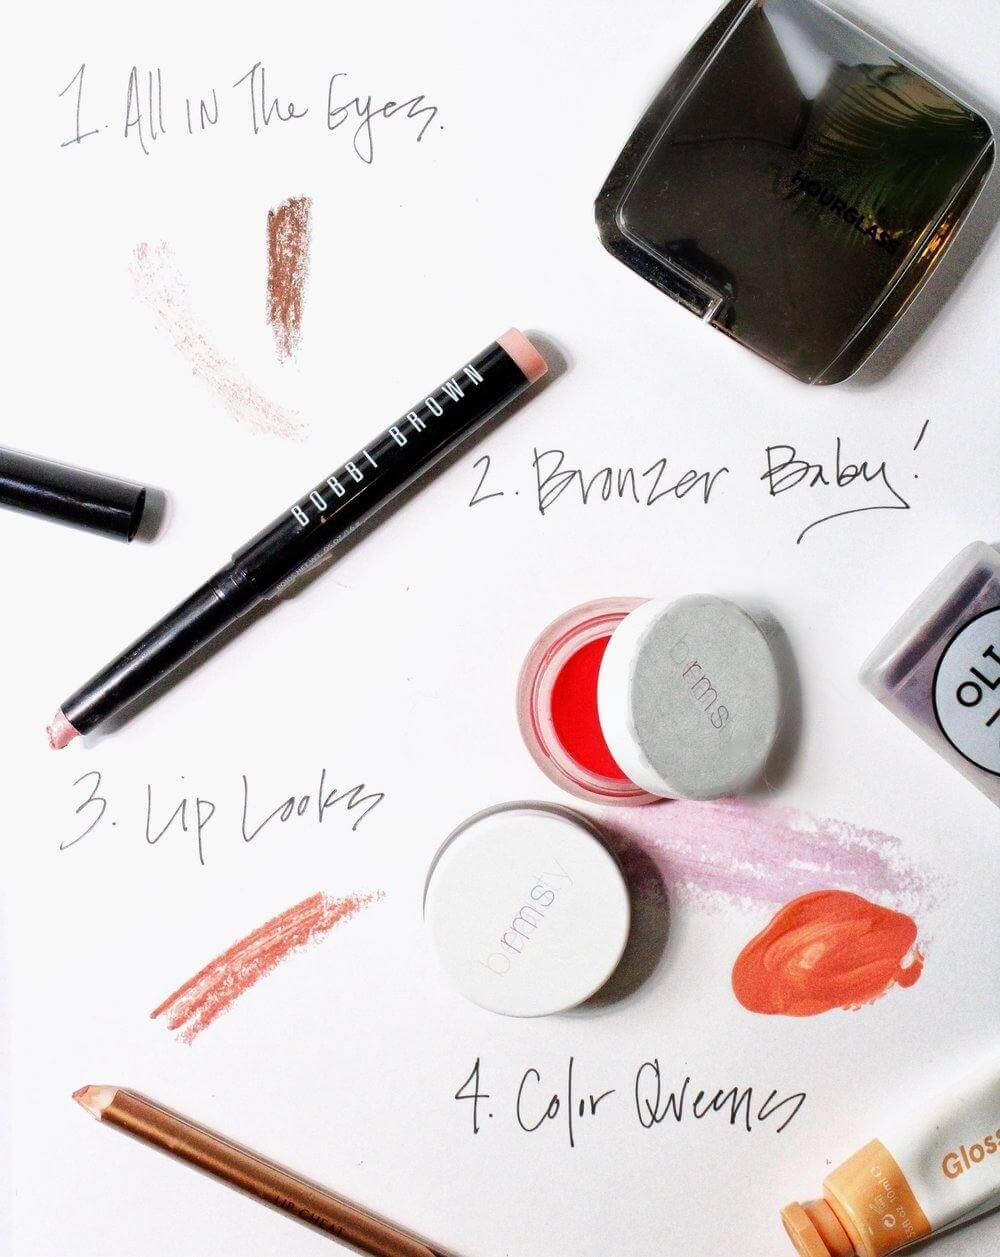 DOUBLE DUTY BEAUTY: MULTI PURPOSE PRODUCTS FOR EVERY DAY